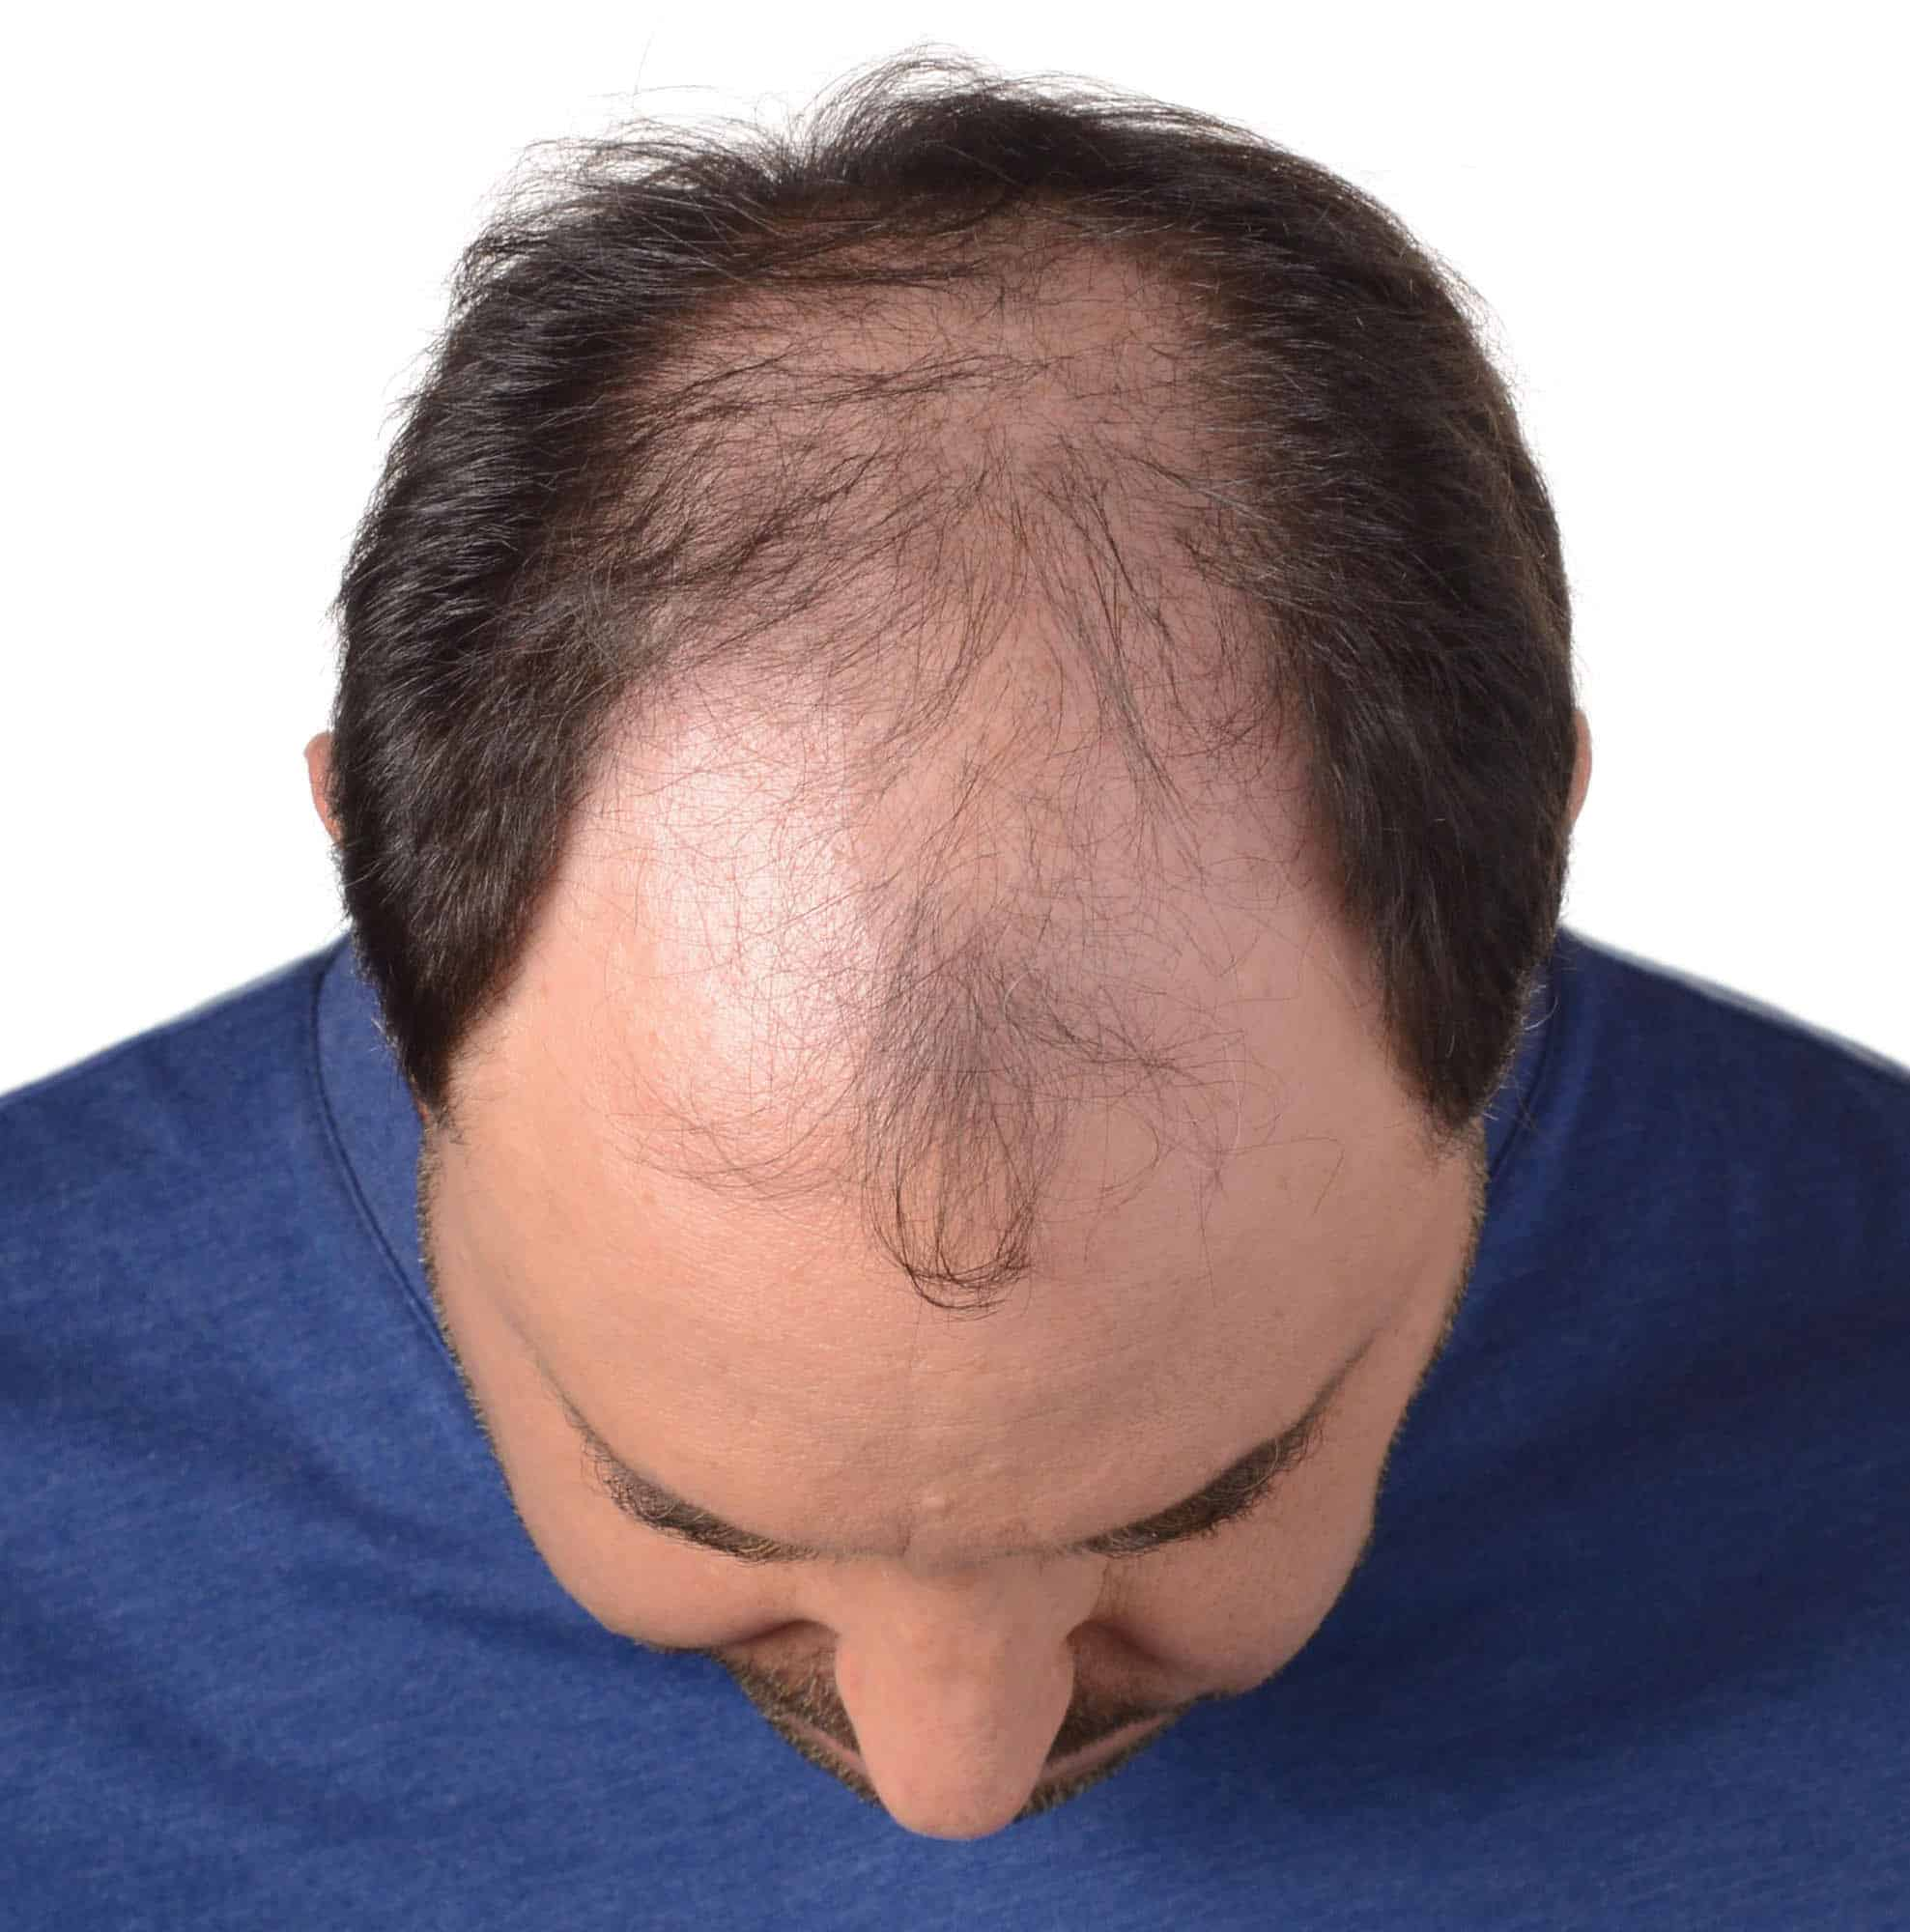 Top 5 Hair Loss Treatments For Men